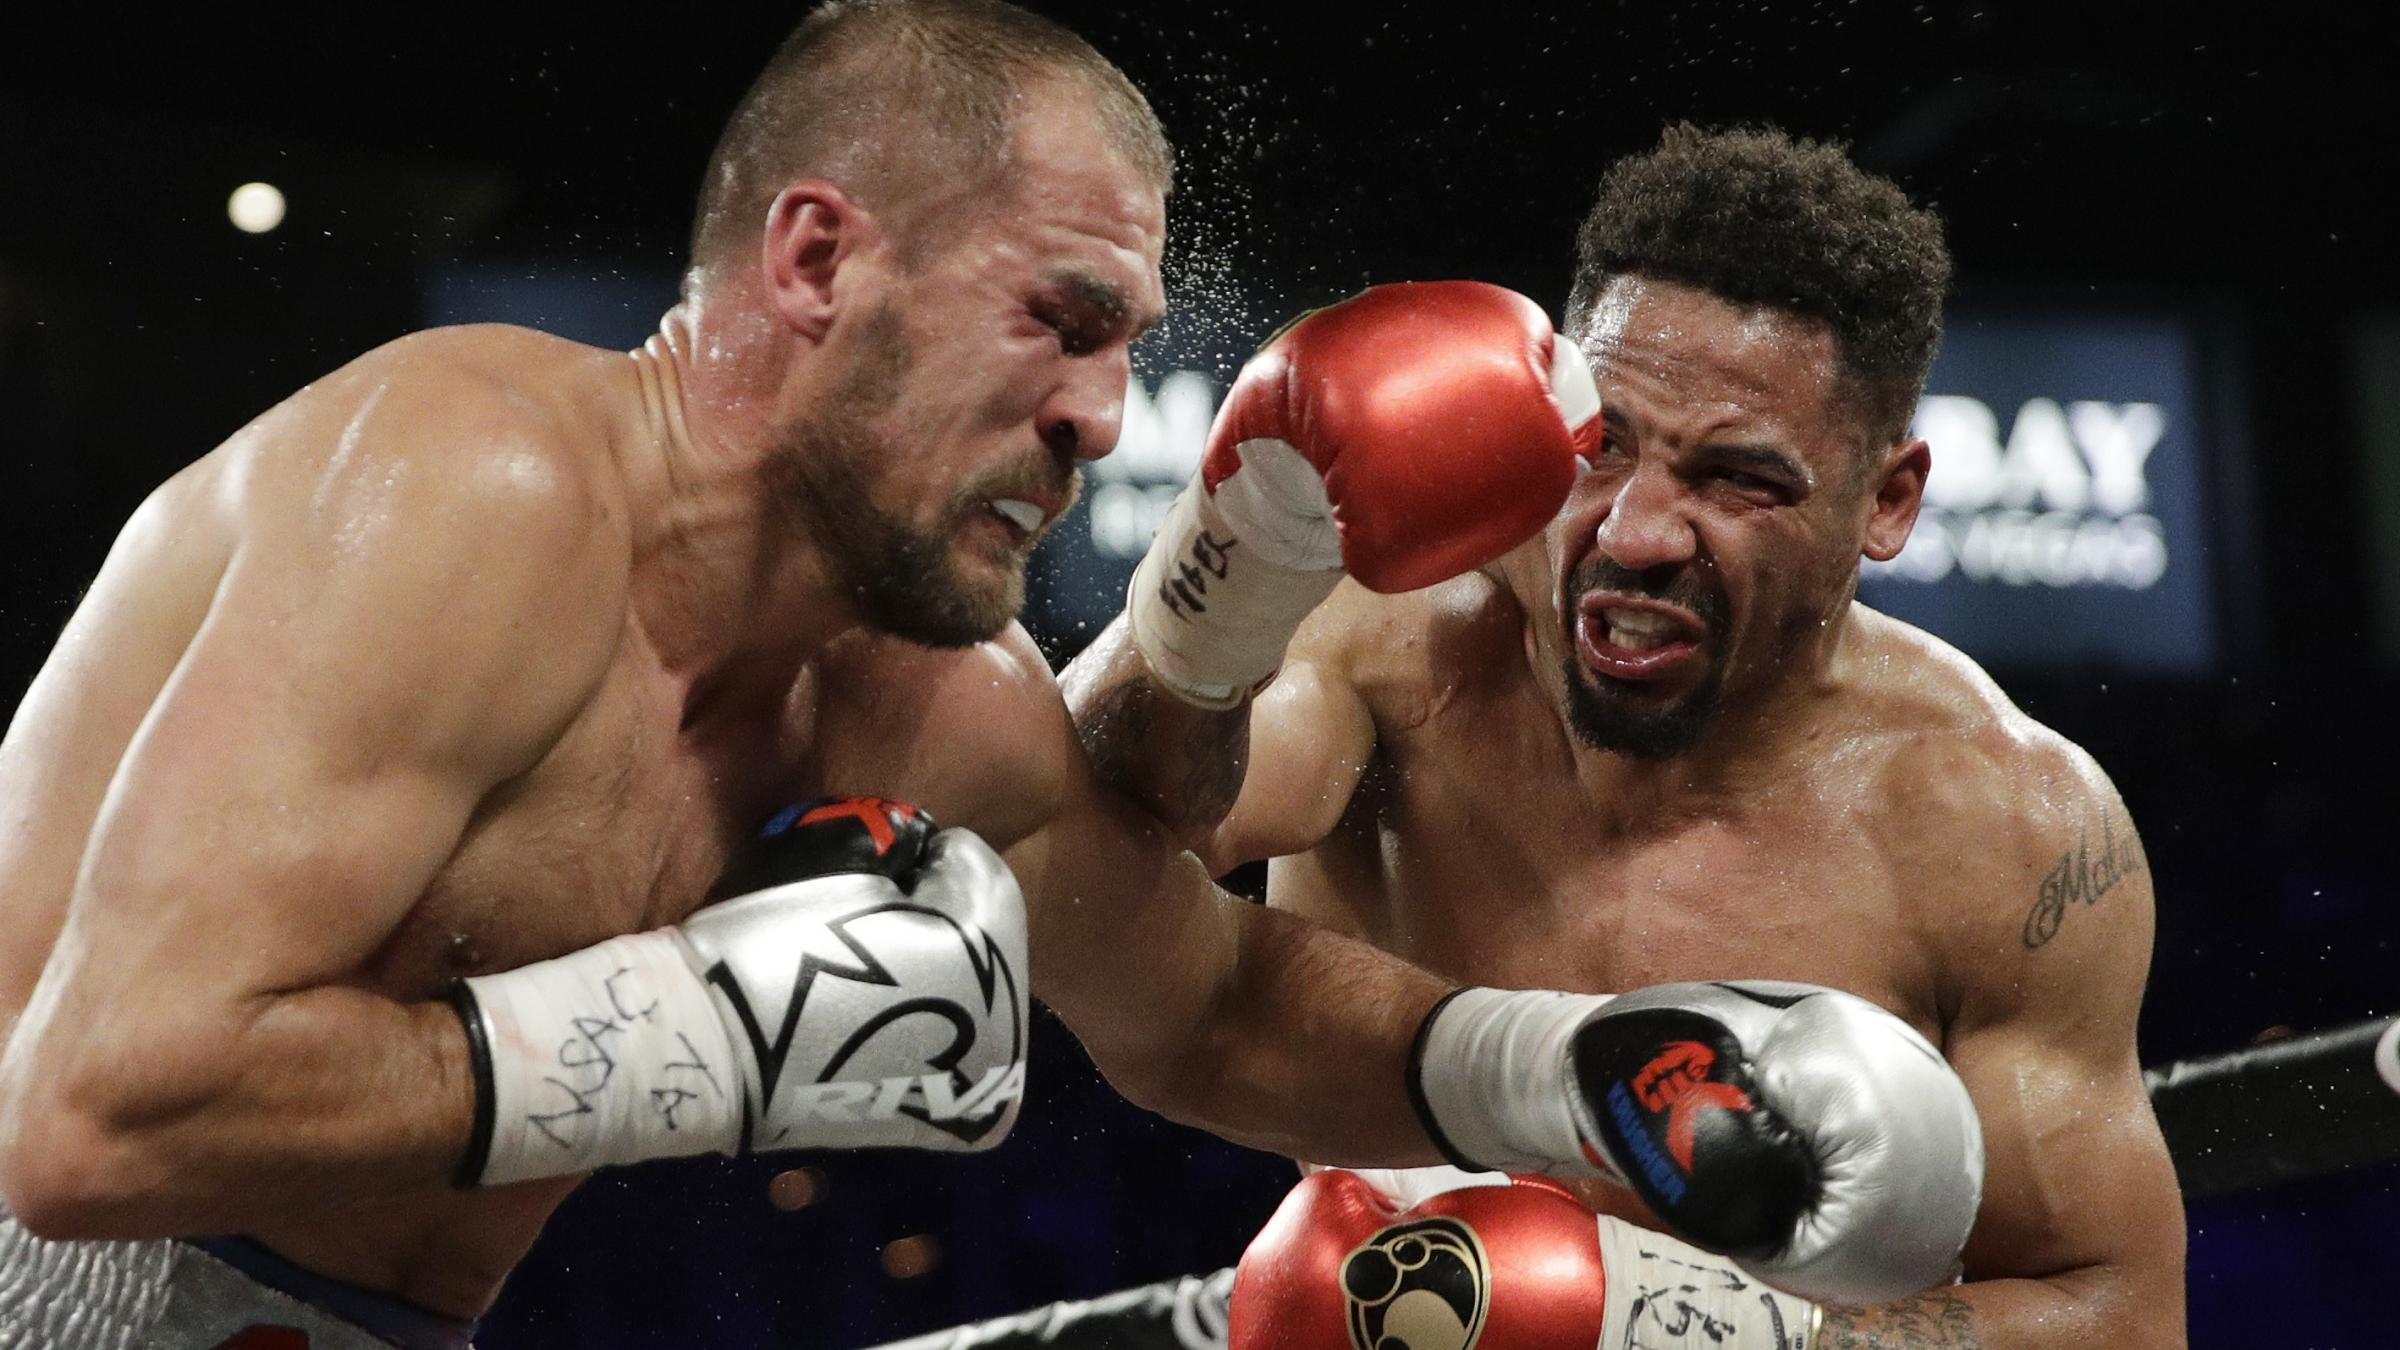 Ward celebrates big win while Kovalev plans protest